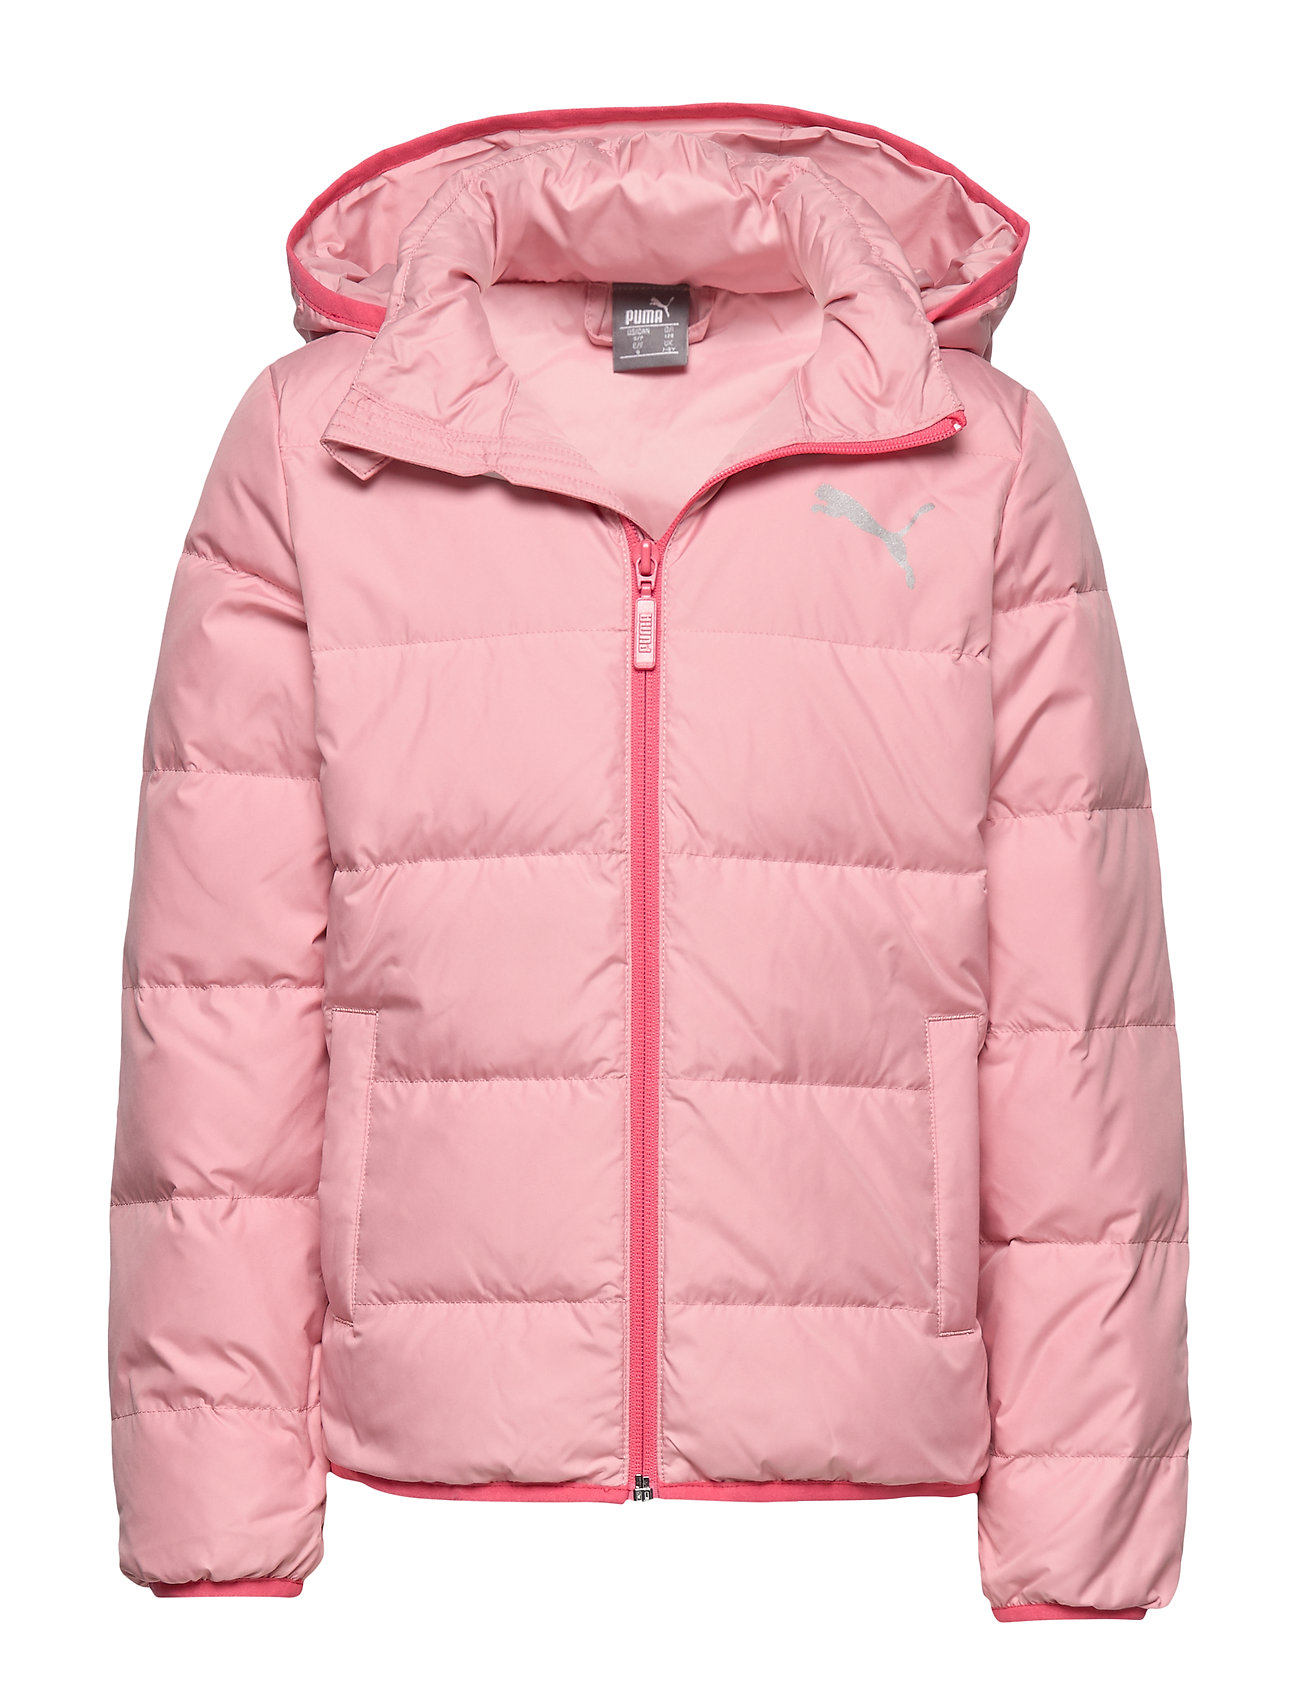 PUMA Light Down Jacket G - BRIDAL ROSE